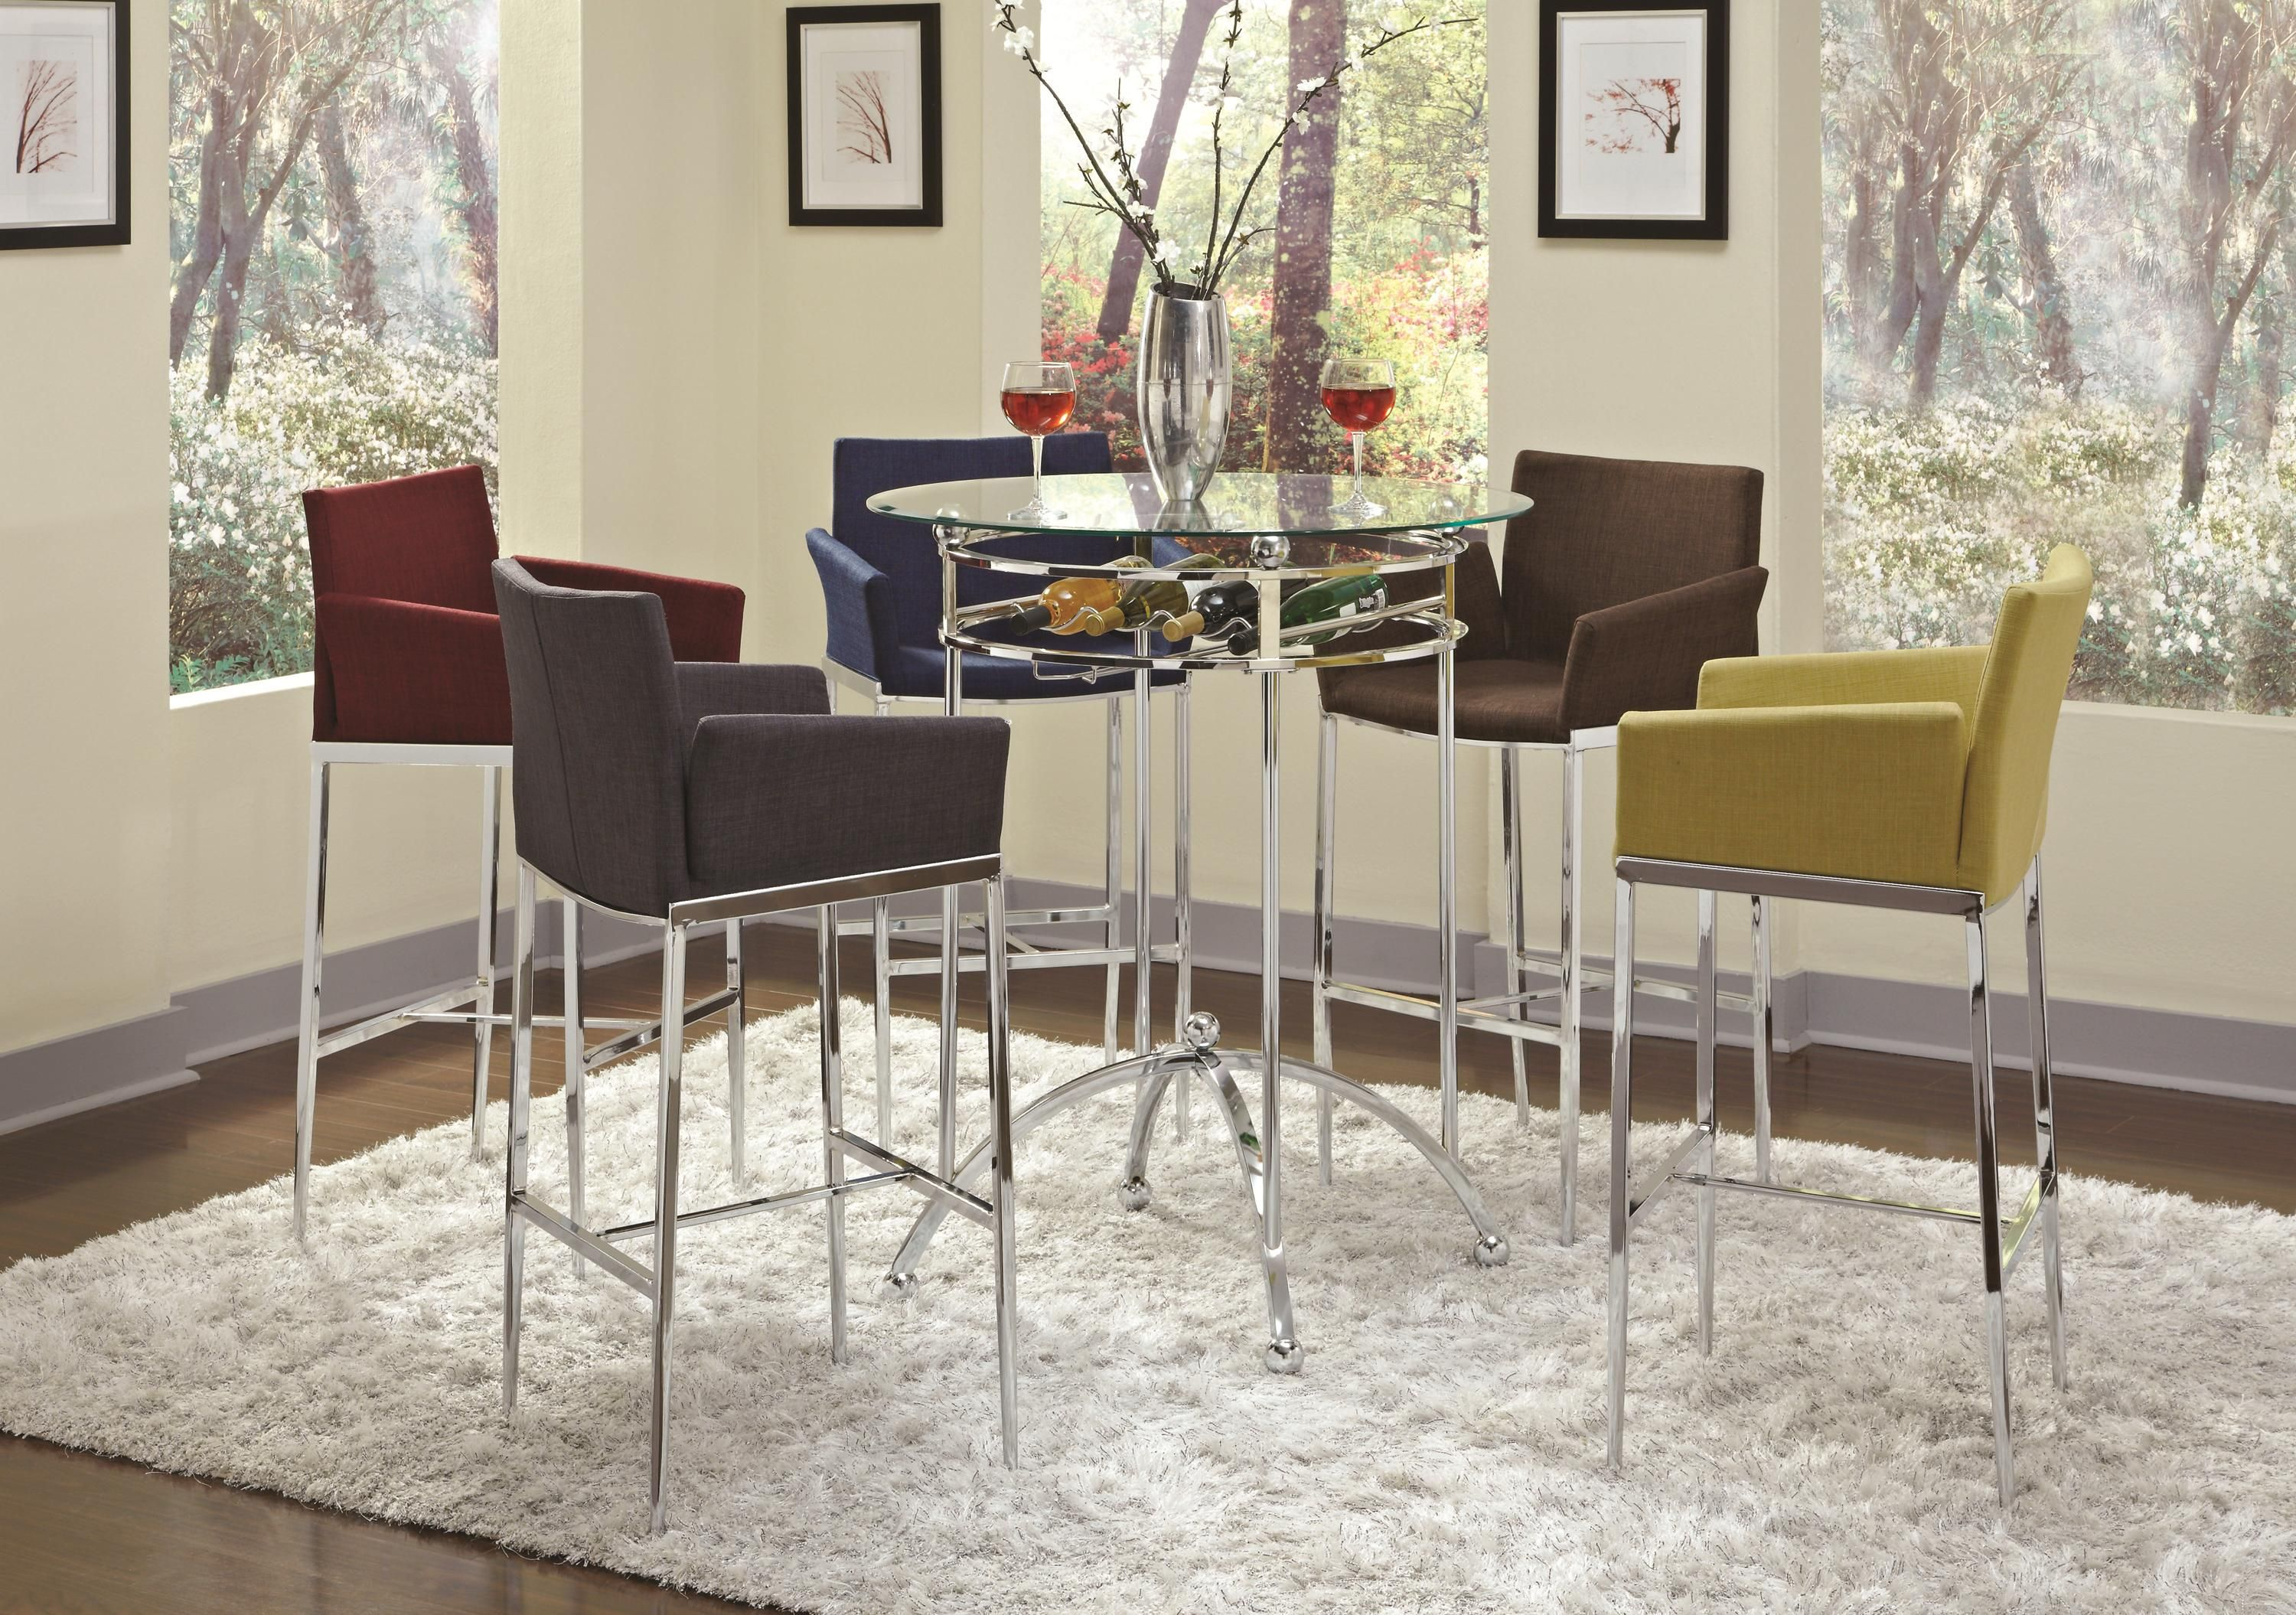 120335 Bar Units And Bar Tables Modern Bar Height Table With